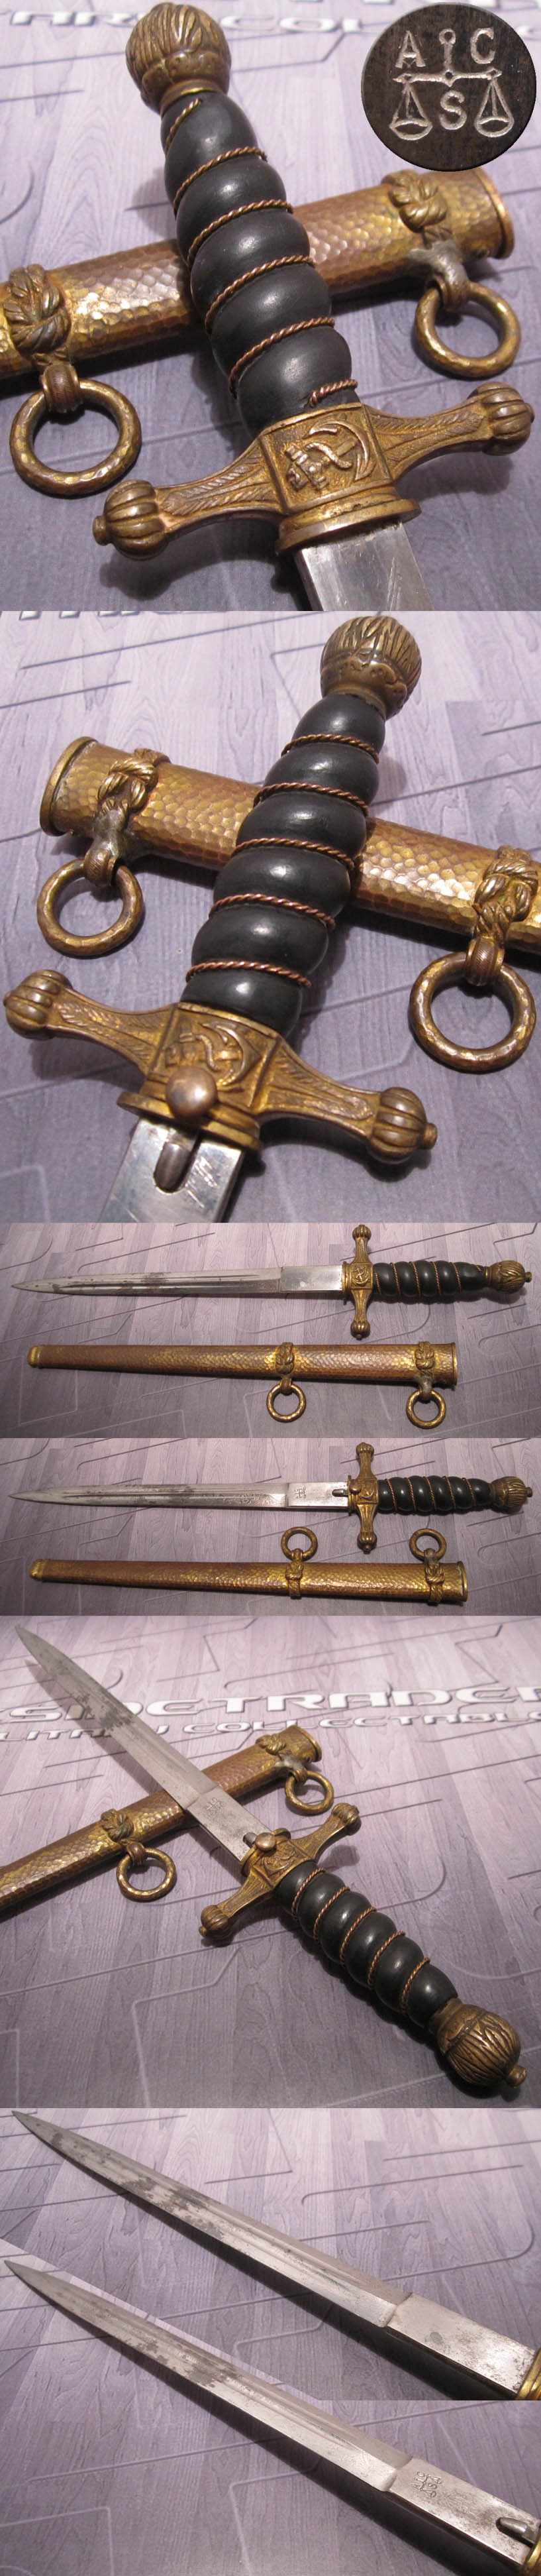 Imperial 1921 Mourning Navy Dagger by Alcoso